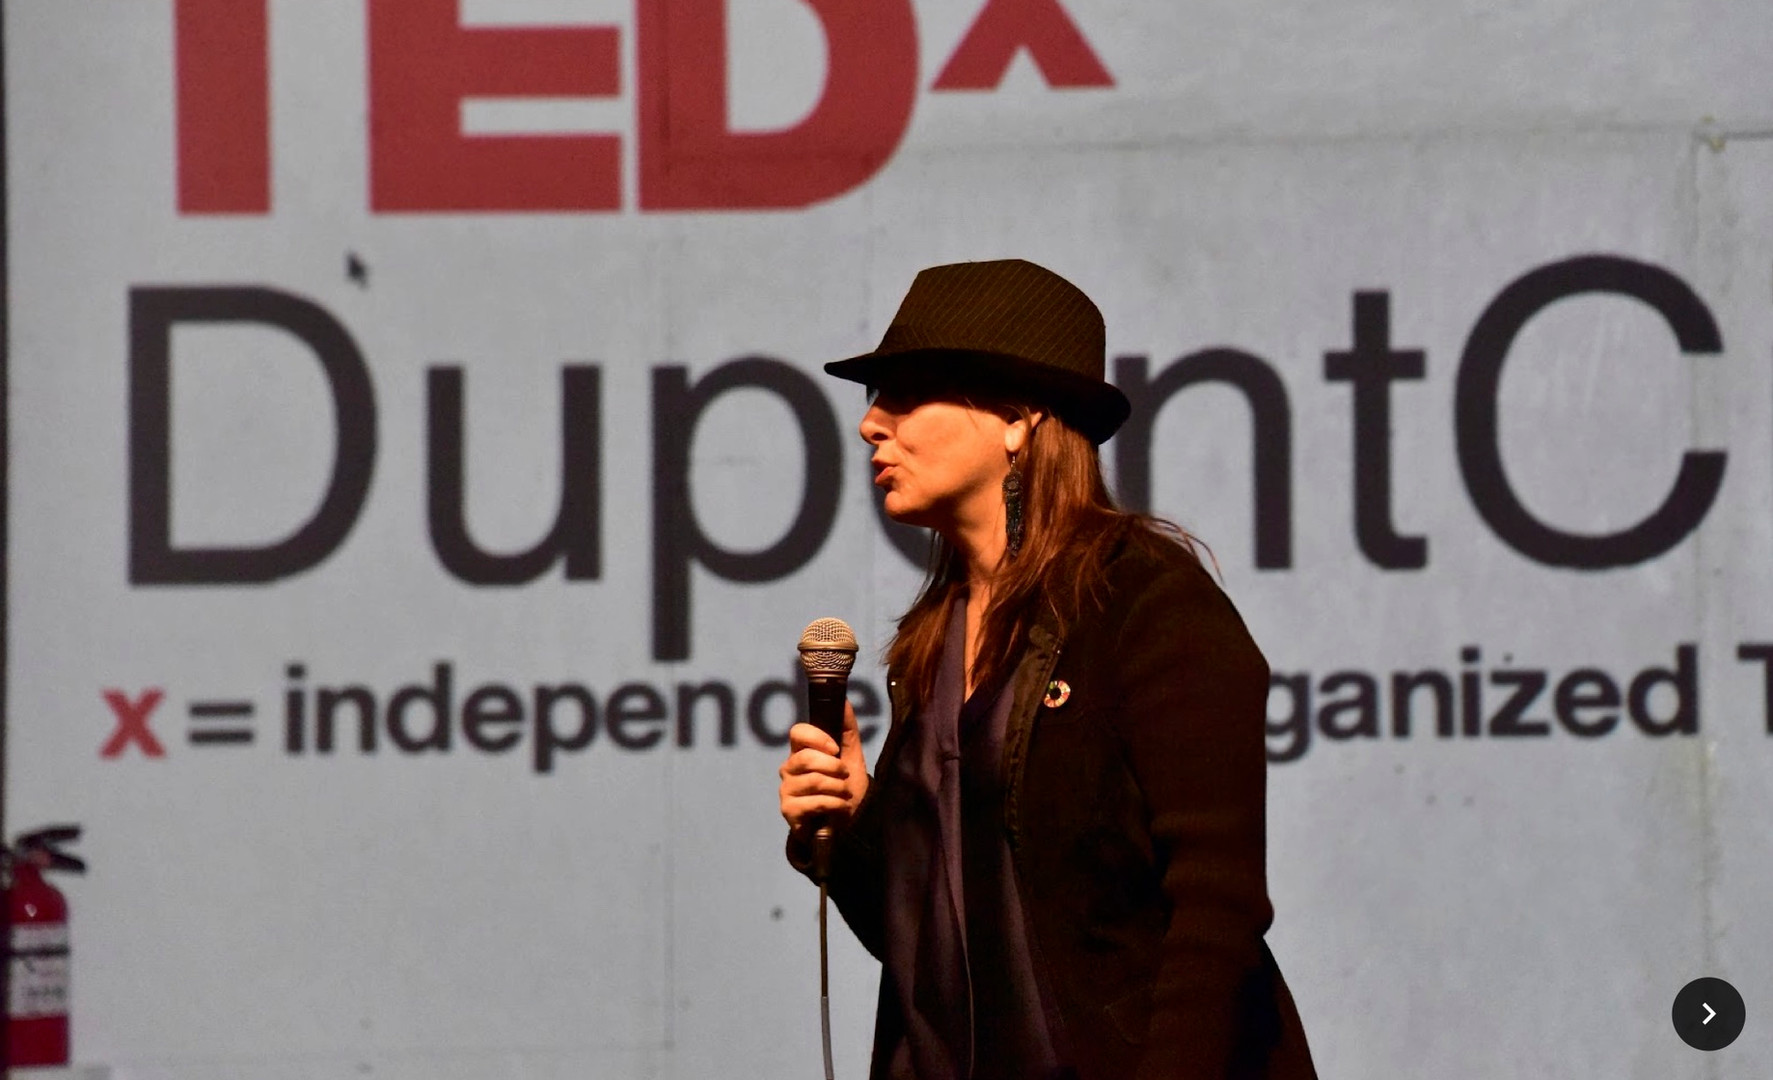 TEDx DupontCircleED